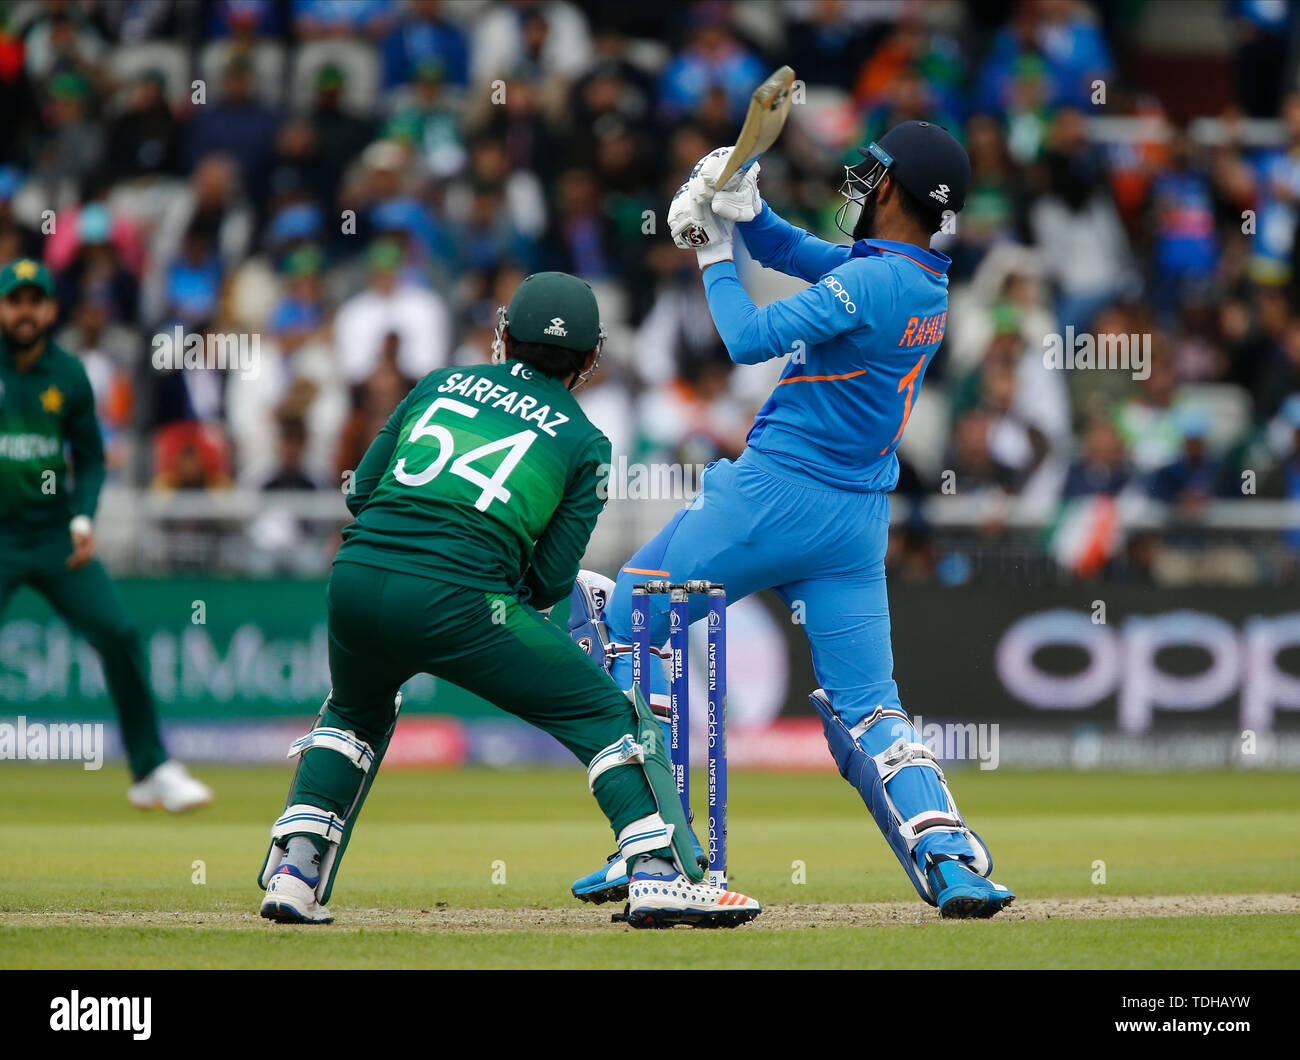 Old Trafford, Manchester, UK. 16th June, 2019. ICC World Cup Cricket, India versus Pakistan; KL Rahul of India brings up his half century Credit: Action Plus Sports/Alamy Live News - Stock Image